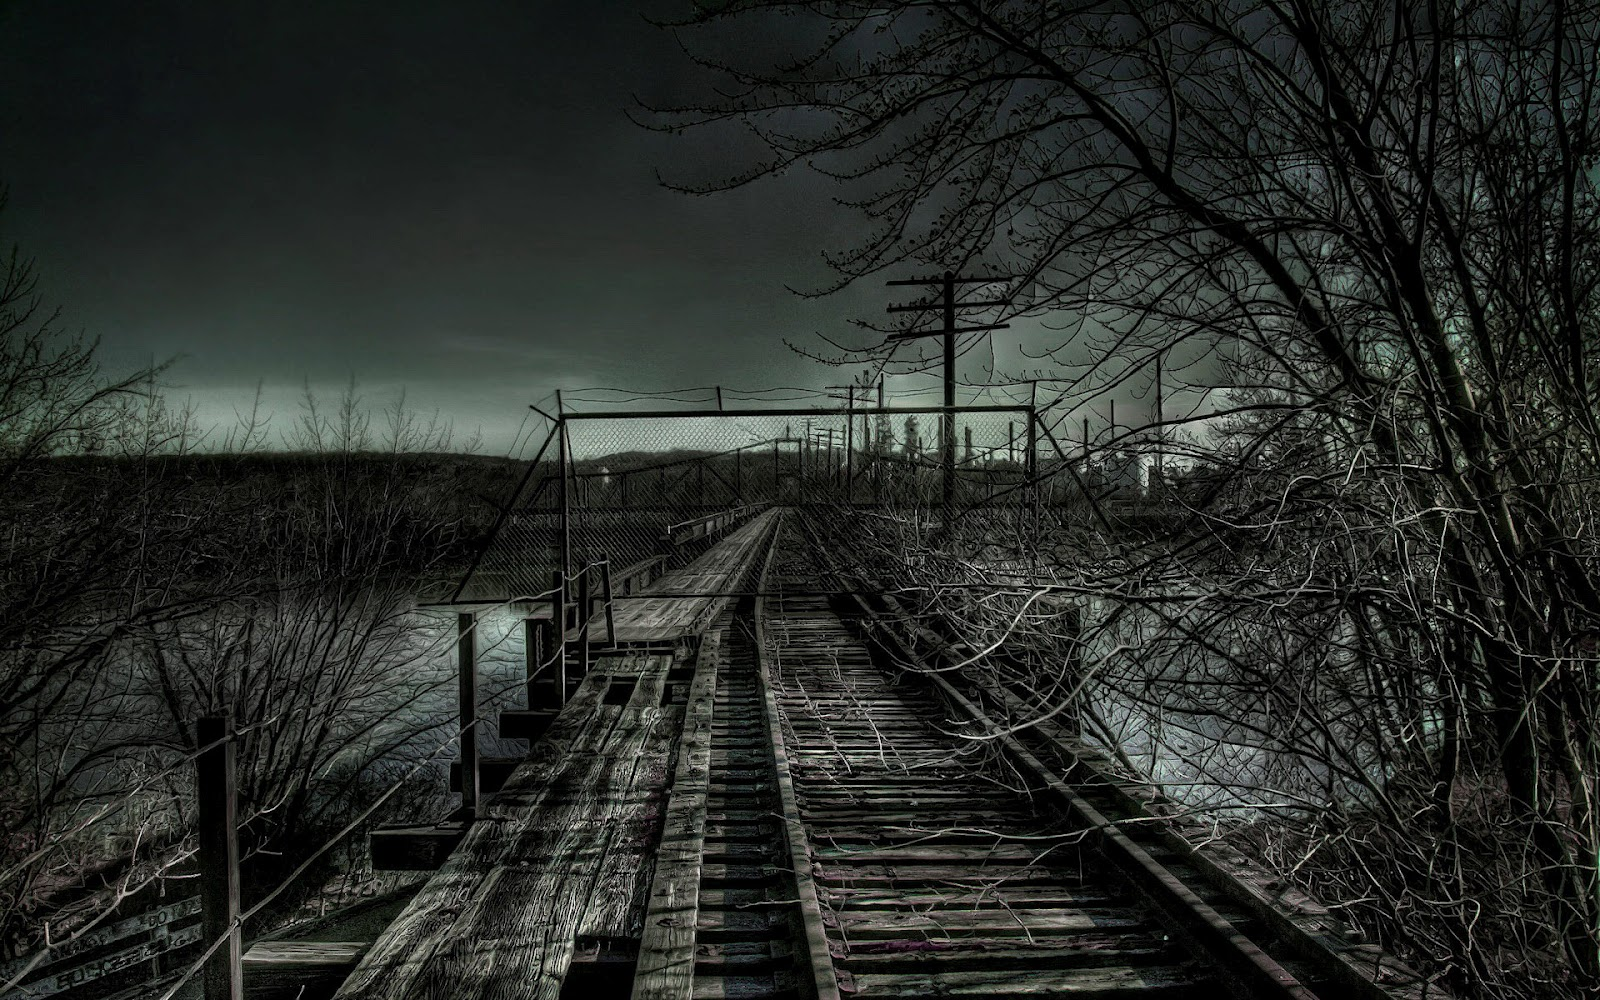 Spooky railway bridge wallpaper home of wallpapers for House of tracks